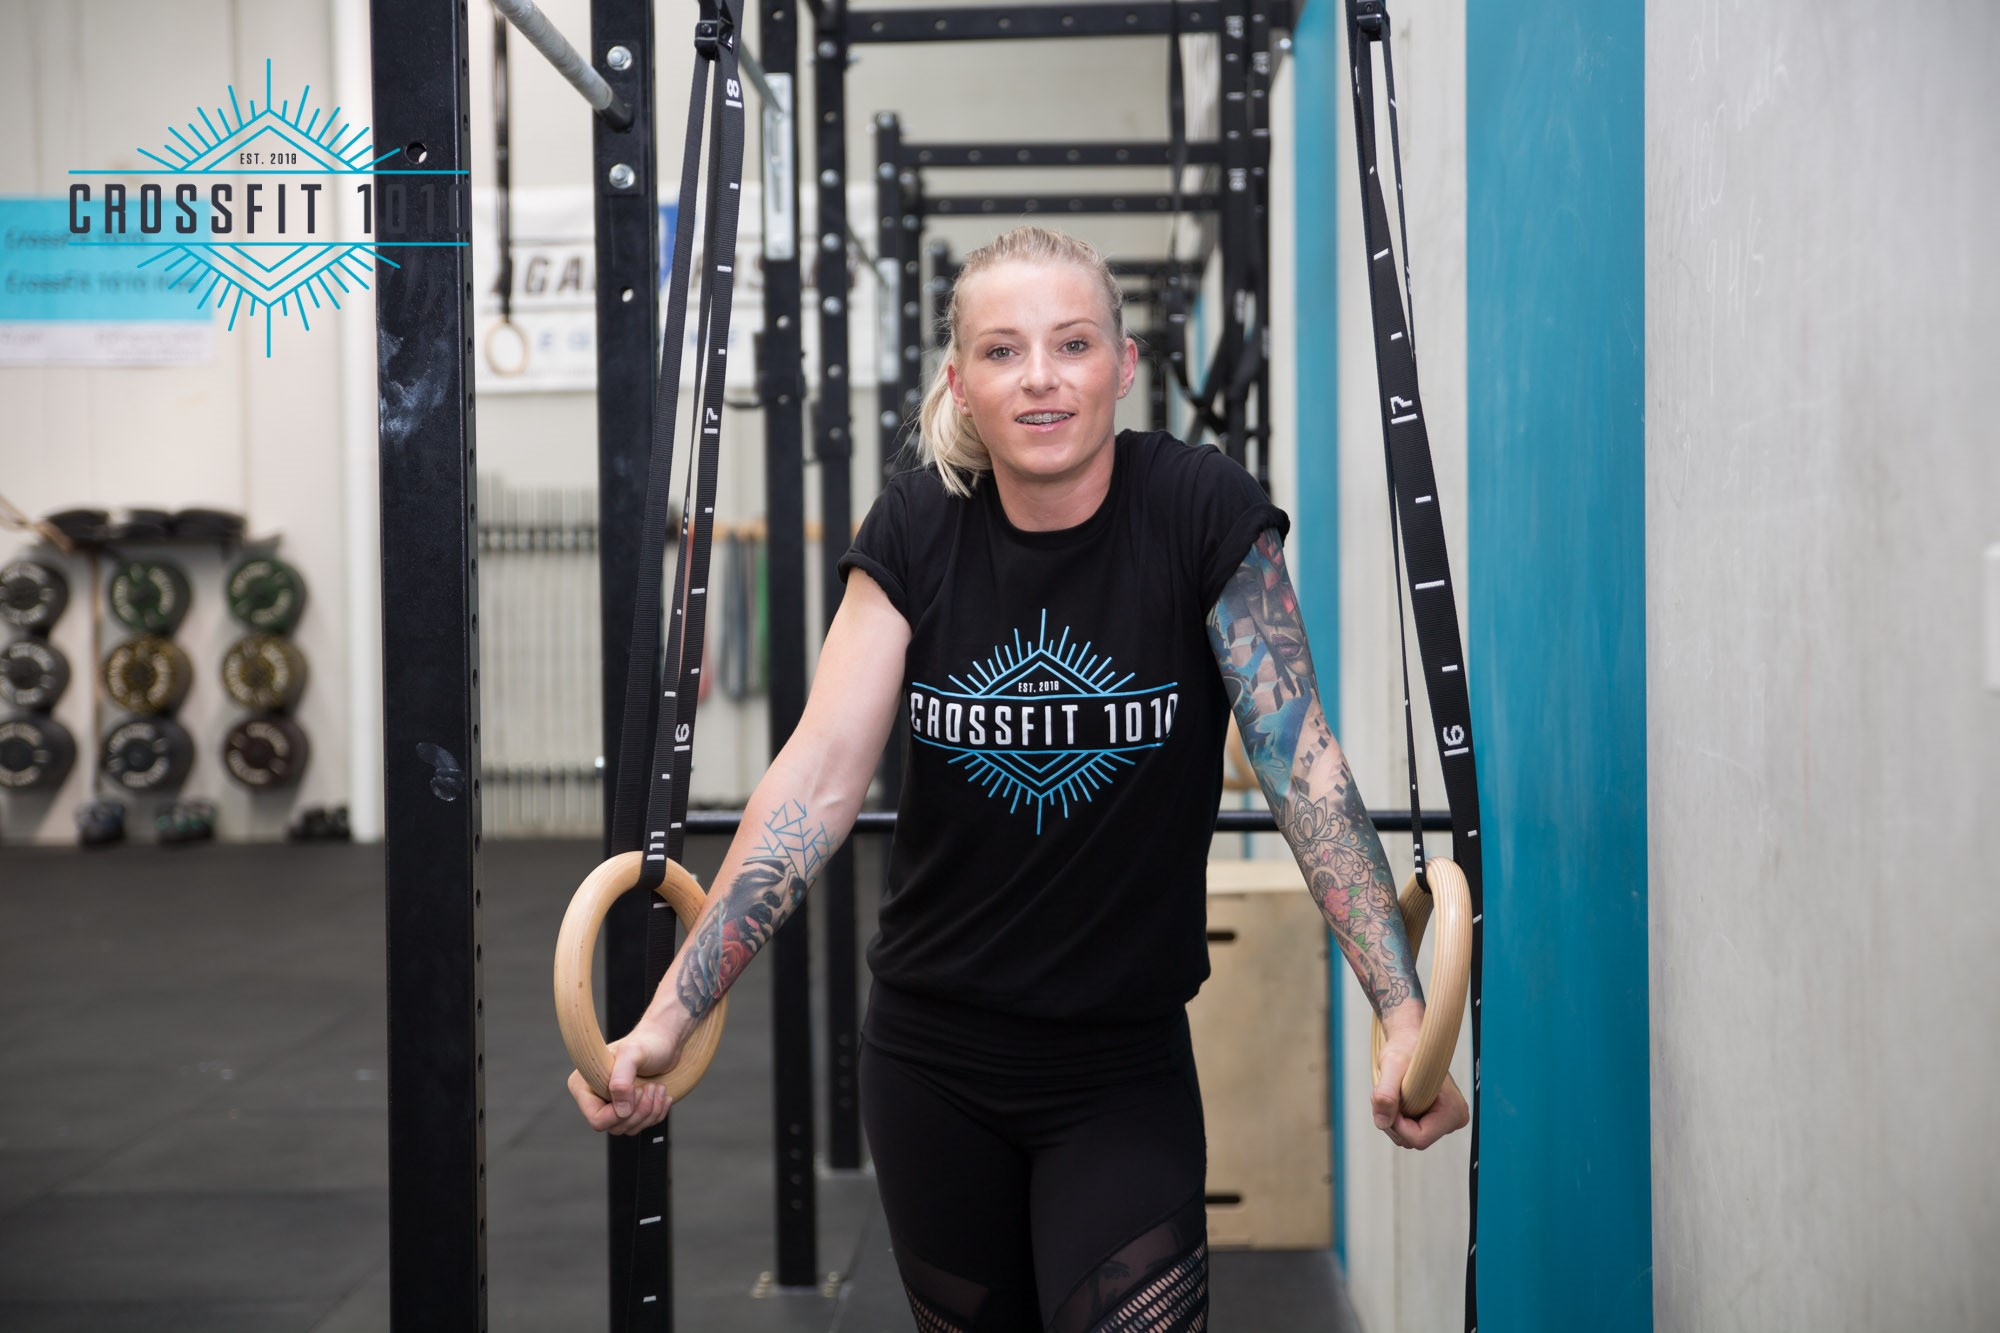 candice-thomason-crossfit-1010- feb-2019-4.jpg